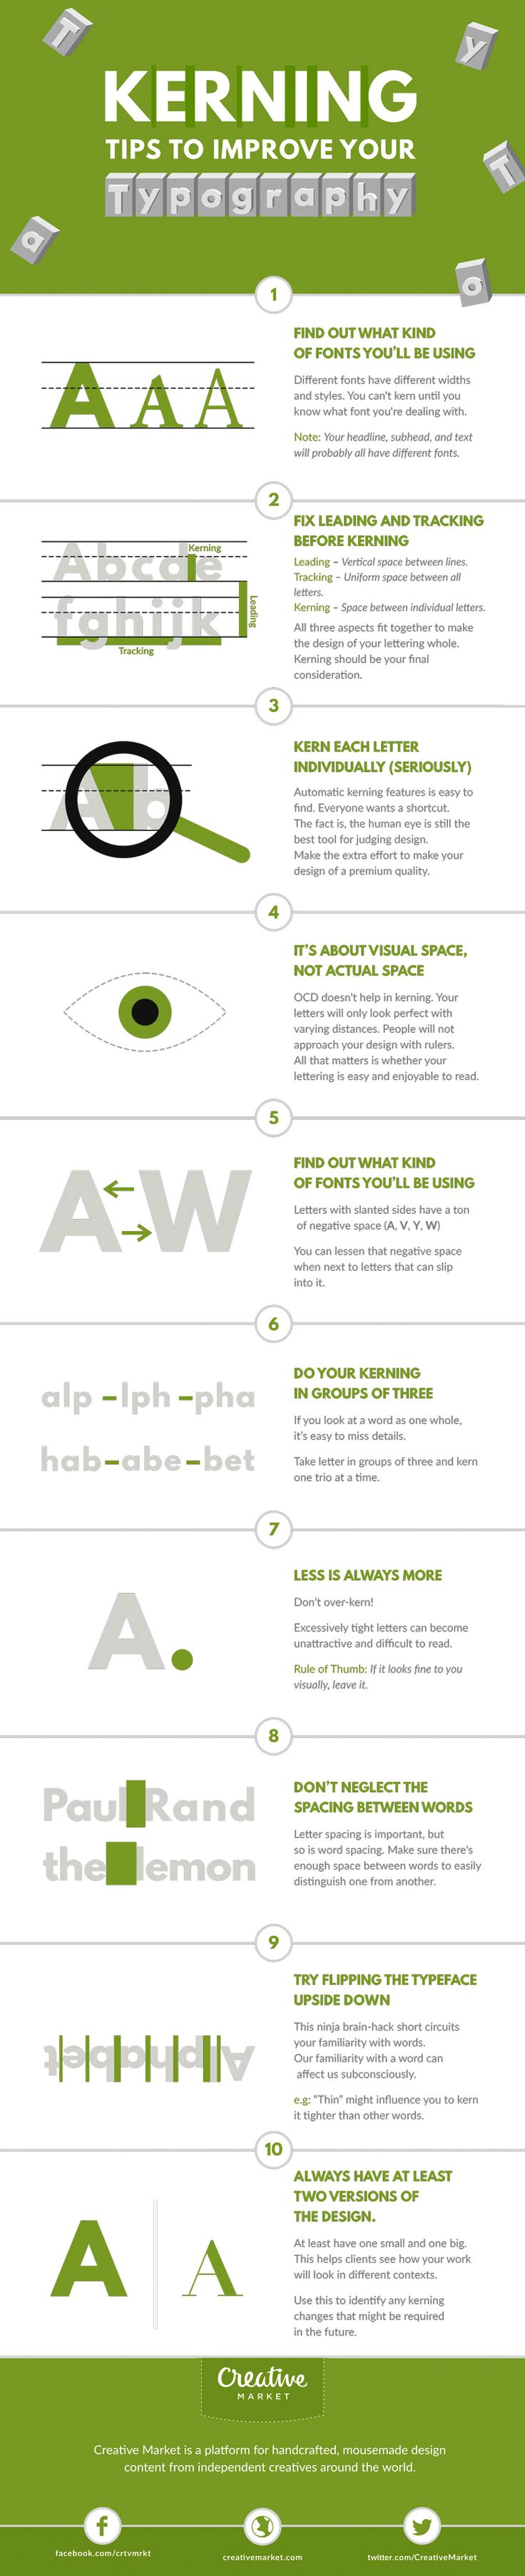 """""""Typography is an art. Good typography is art."""" – Paul Rand. If you're a typography freak like us, you'll enjoy this handy infographic by Creative Market that shares some useful kerning tips and tricks to improve your typography. It covers some good points like kerning each letter individually, using visual space not actual space, and […]"""